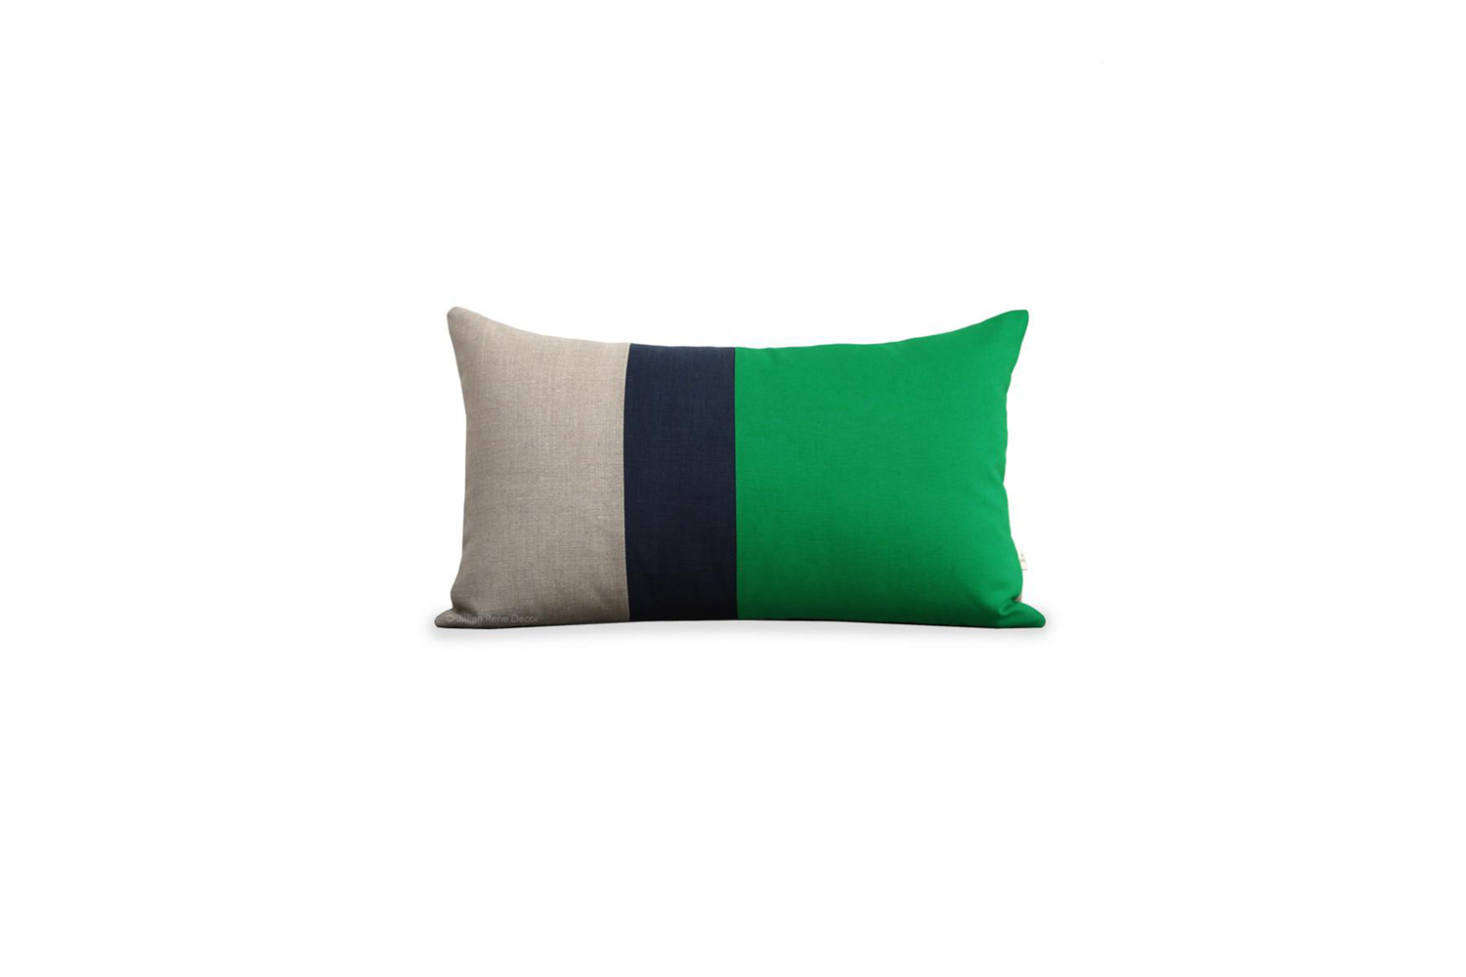 The small color-blocked throw pillow on the bed is from Brooklyn-based French designer Corinne Gilbert. For something similar, the handcraftedJillian Rene Decor Colorblock Pillow in Kelly Navy and Natural is $75 at the designer&#8